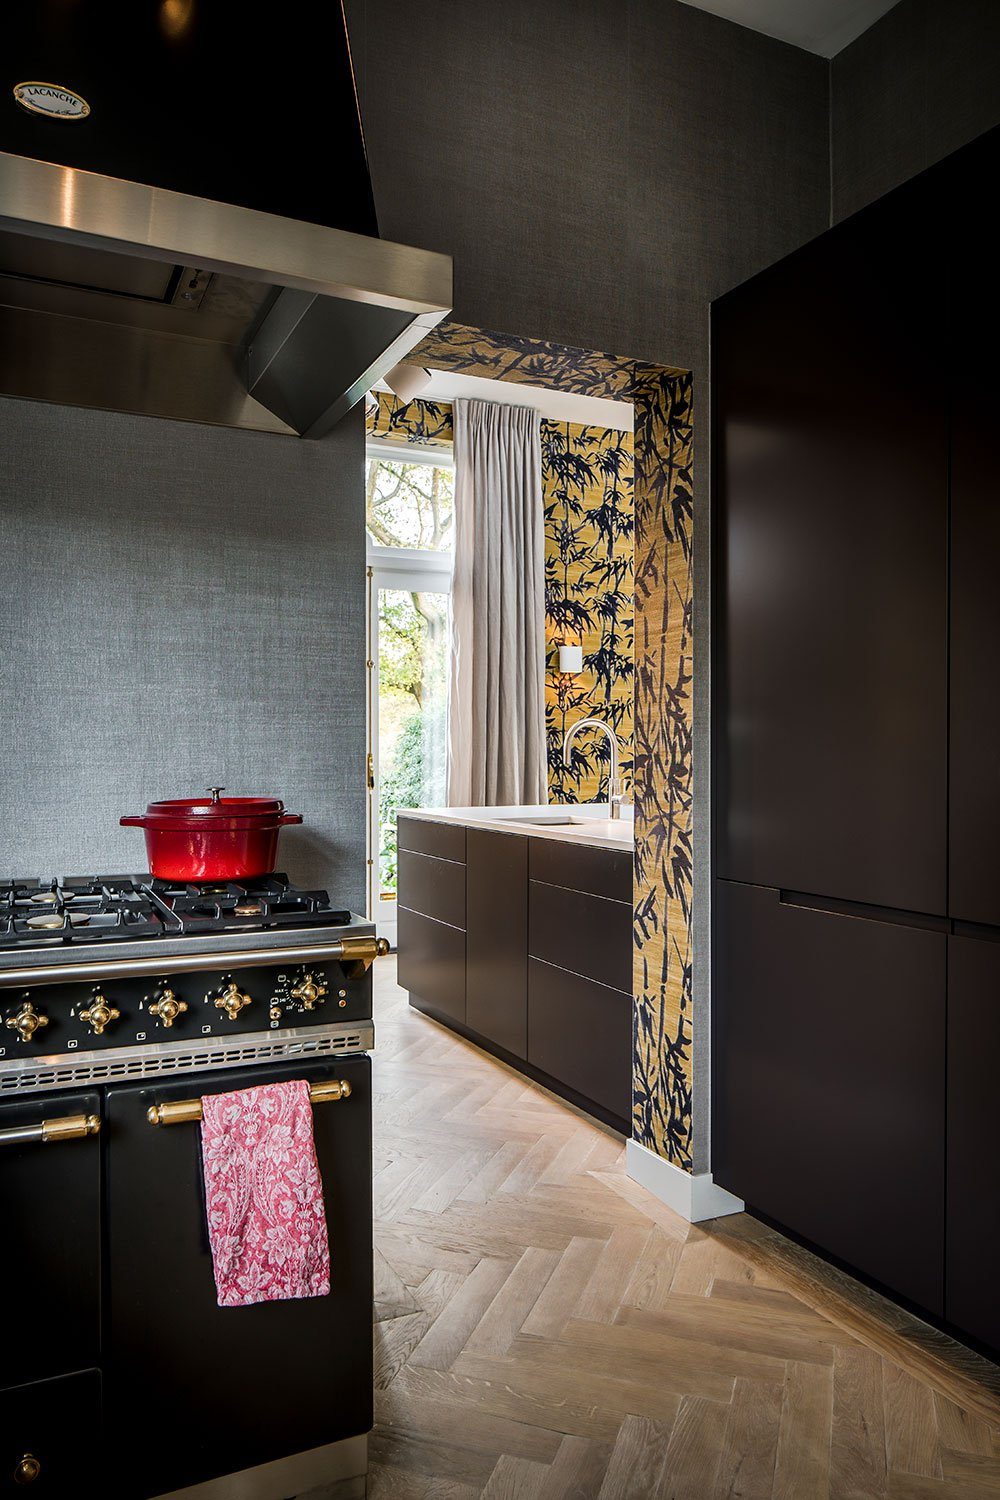 dutch interior design stove dark kitchen gold details